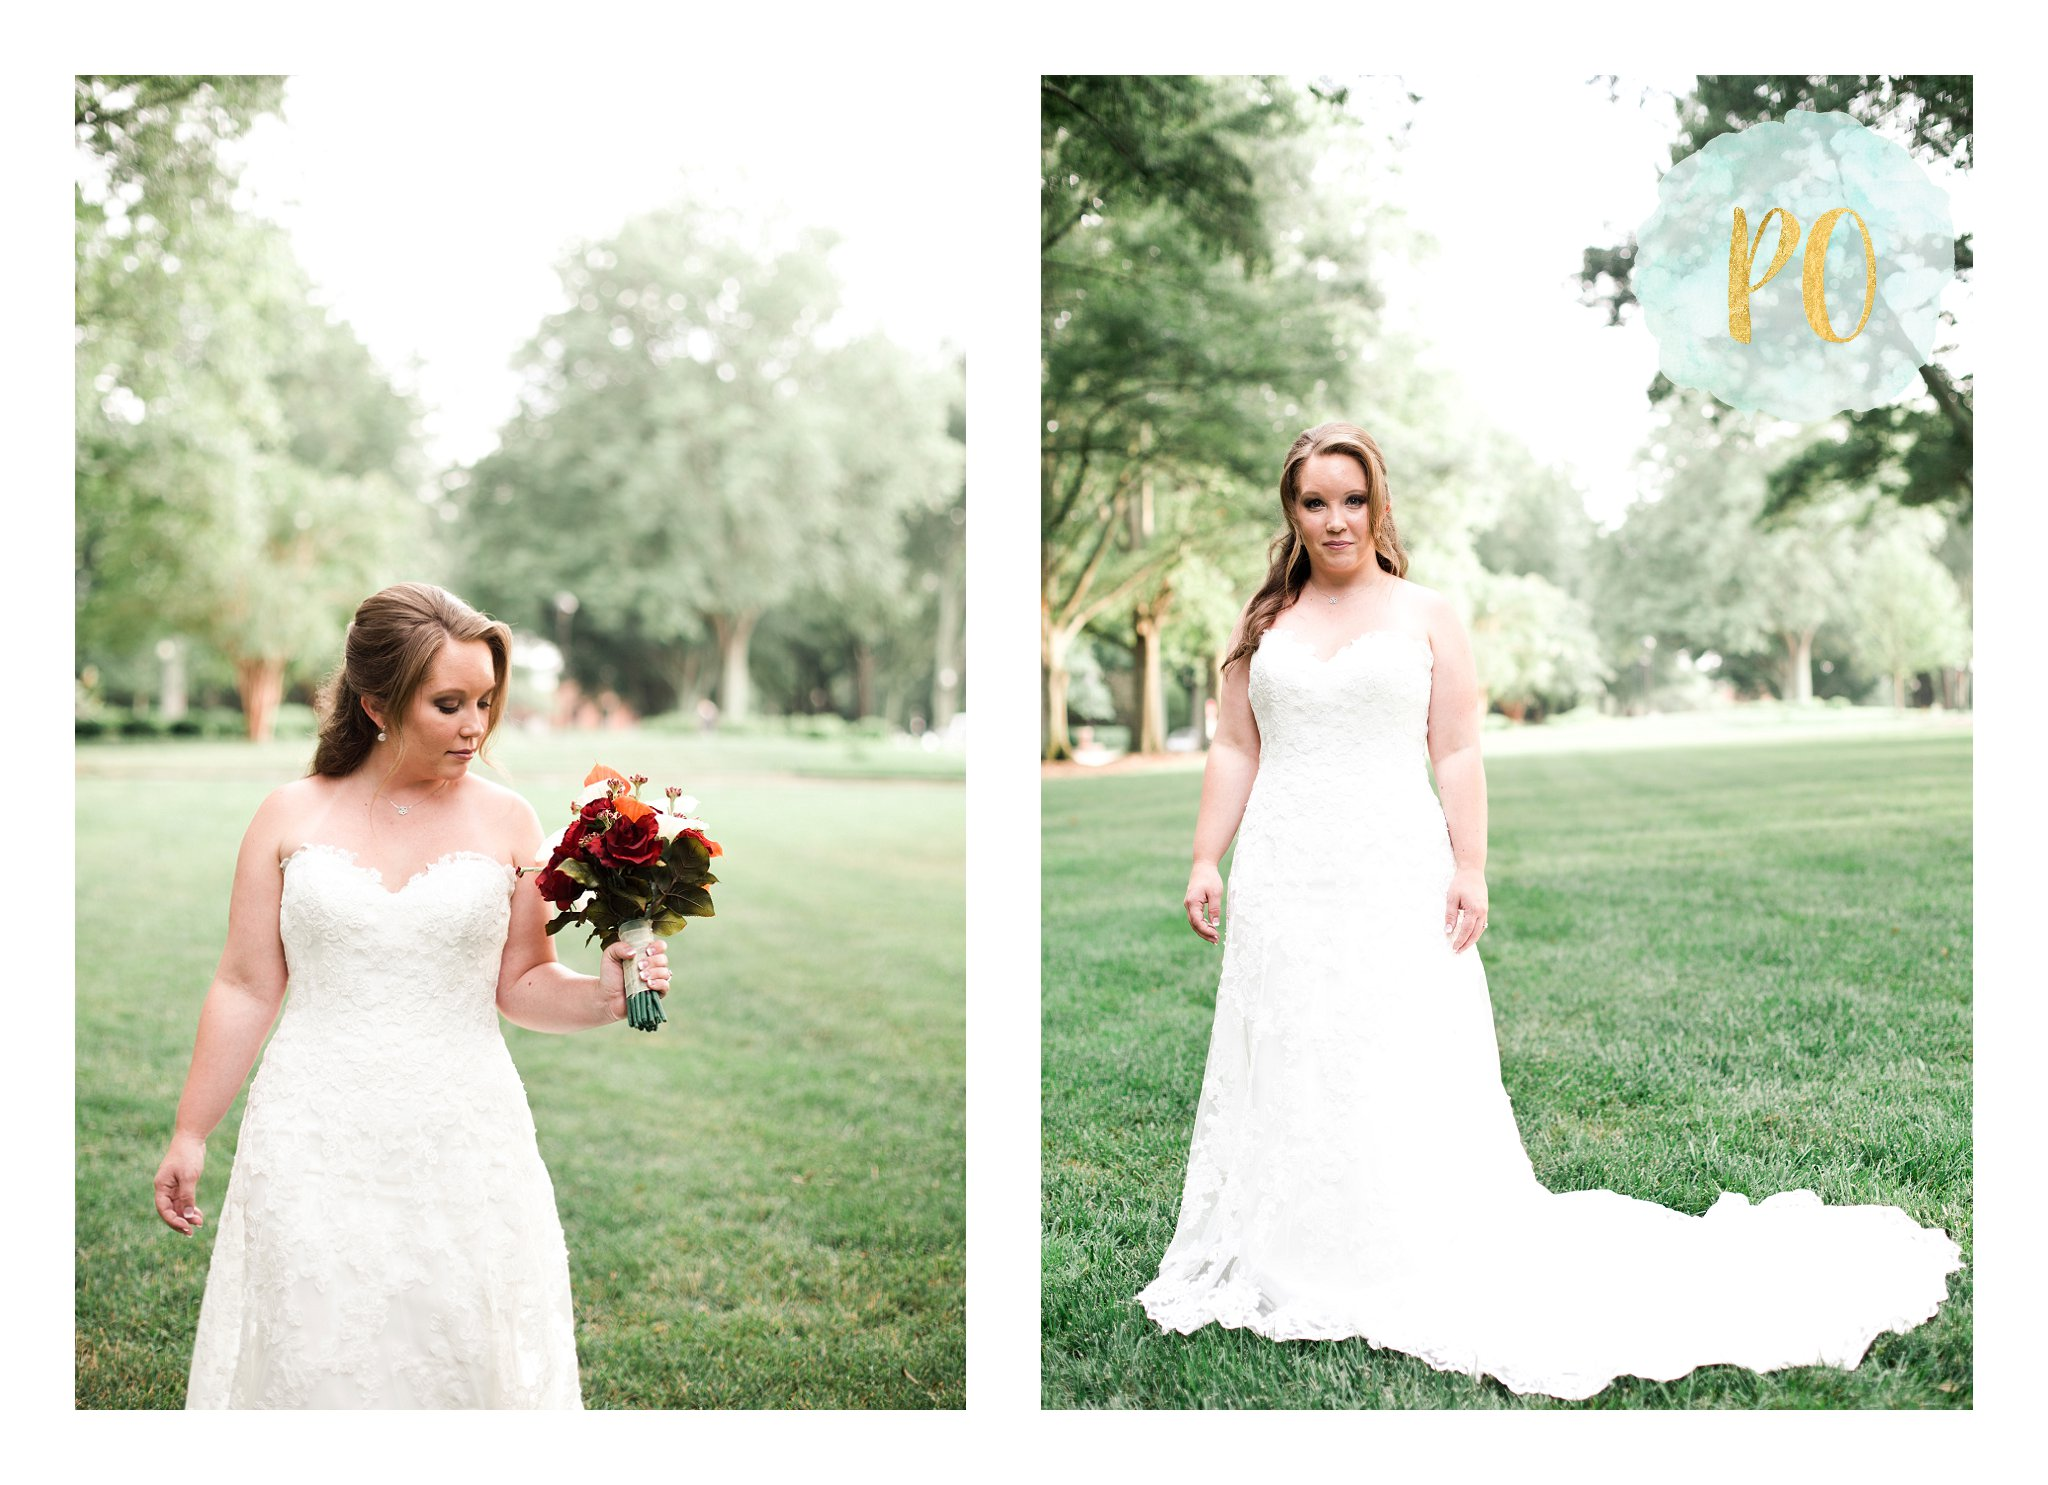 furman-bridal-portrait-greenvile-sc-photos_0012.jpg